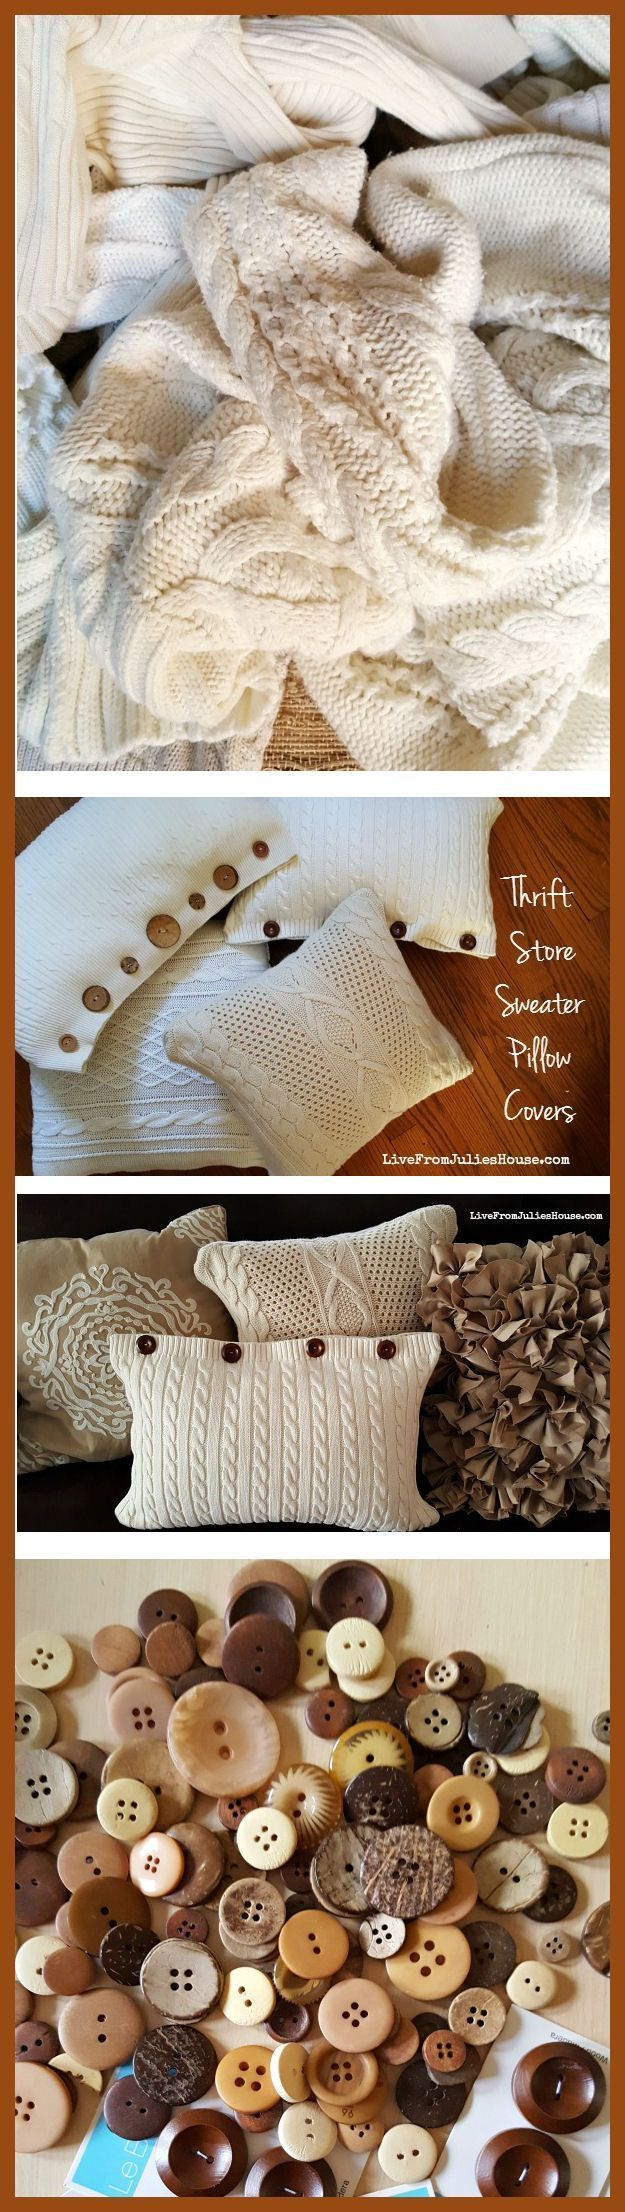 Cover your tired old throw pillows with thrift store sweaters for a cozy, hand knit look - it's EASY. #thriftstorefurniture